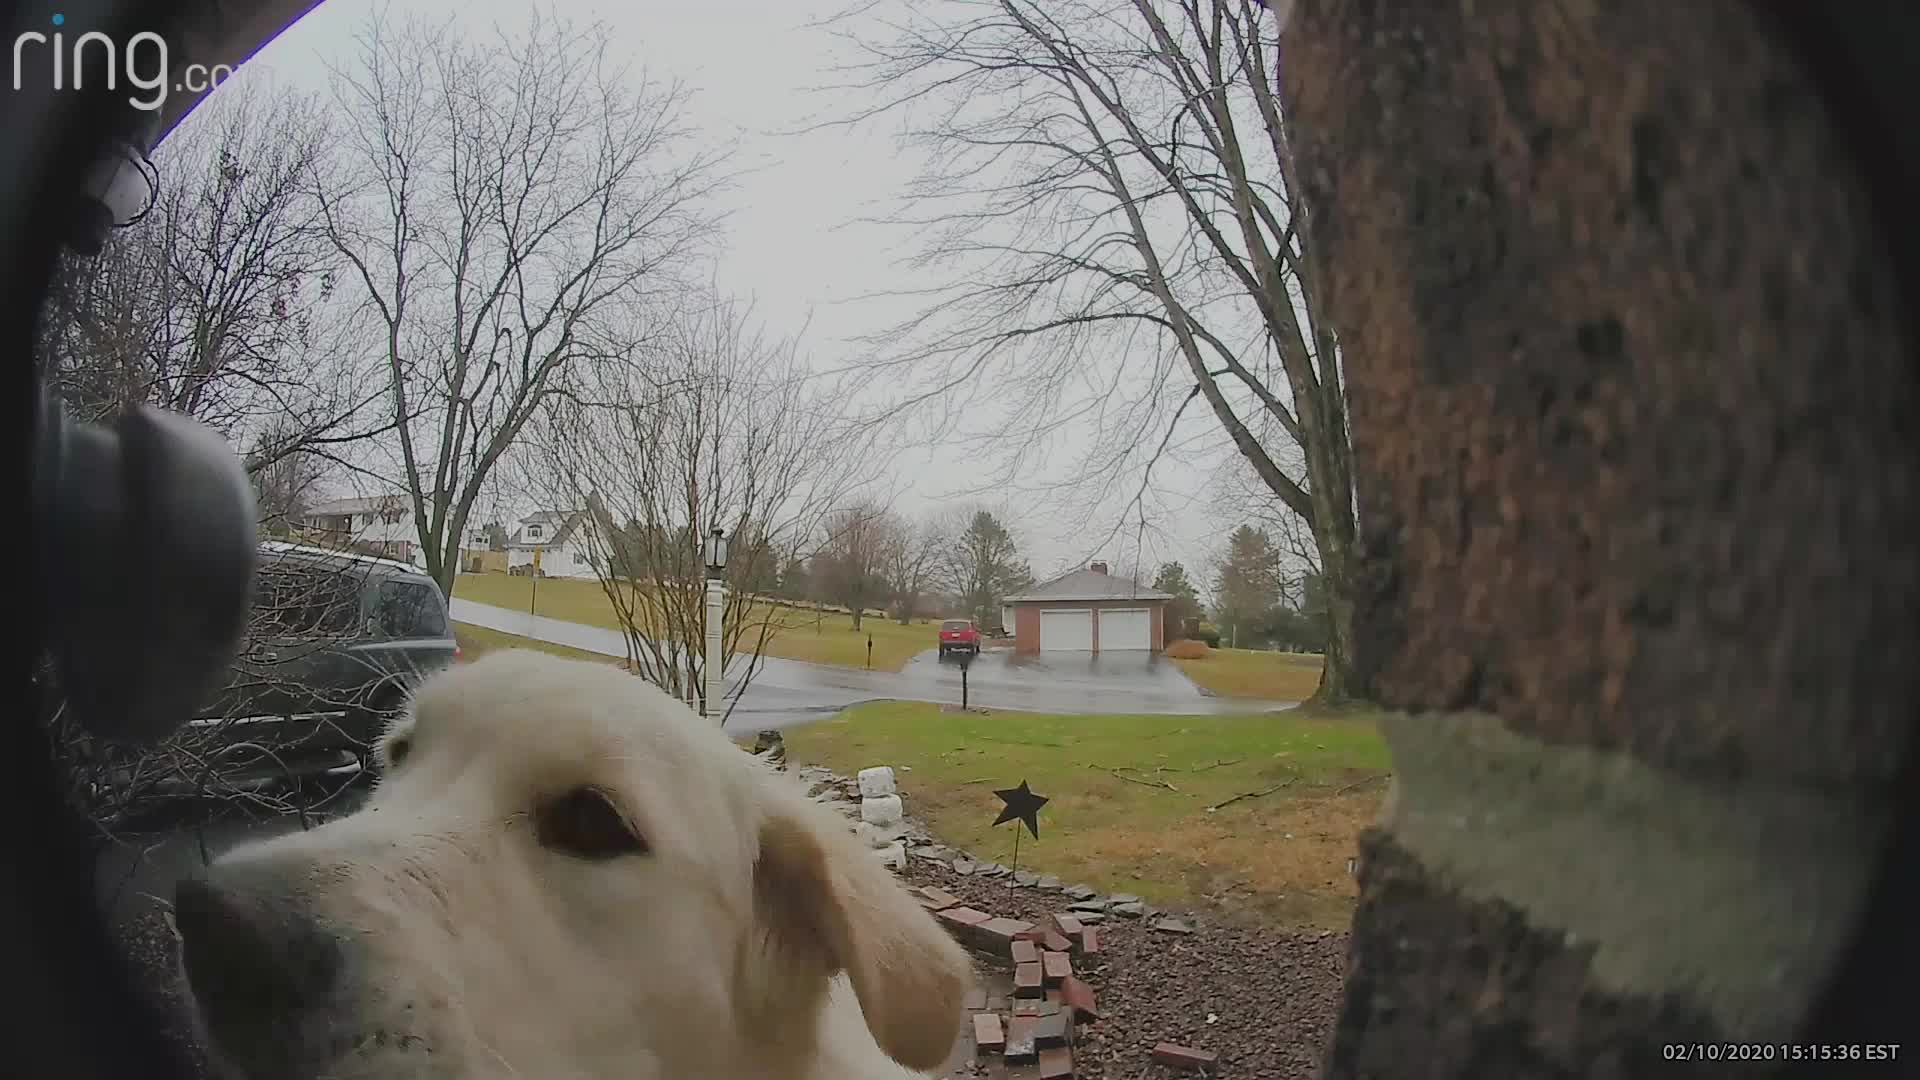 A golden retriever in Pennsylvania rings the doorbell to get inside the house.